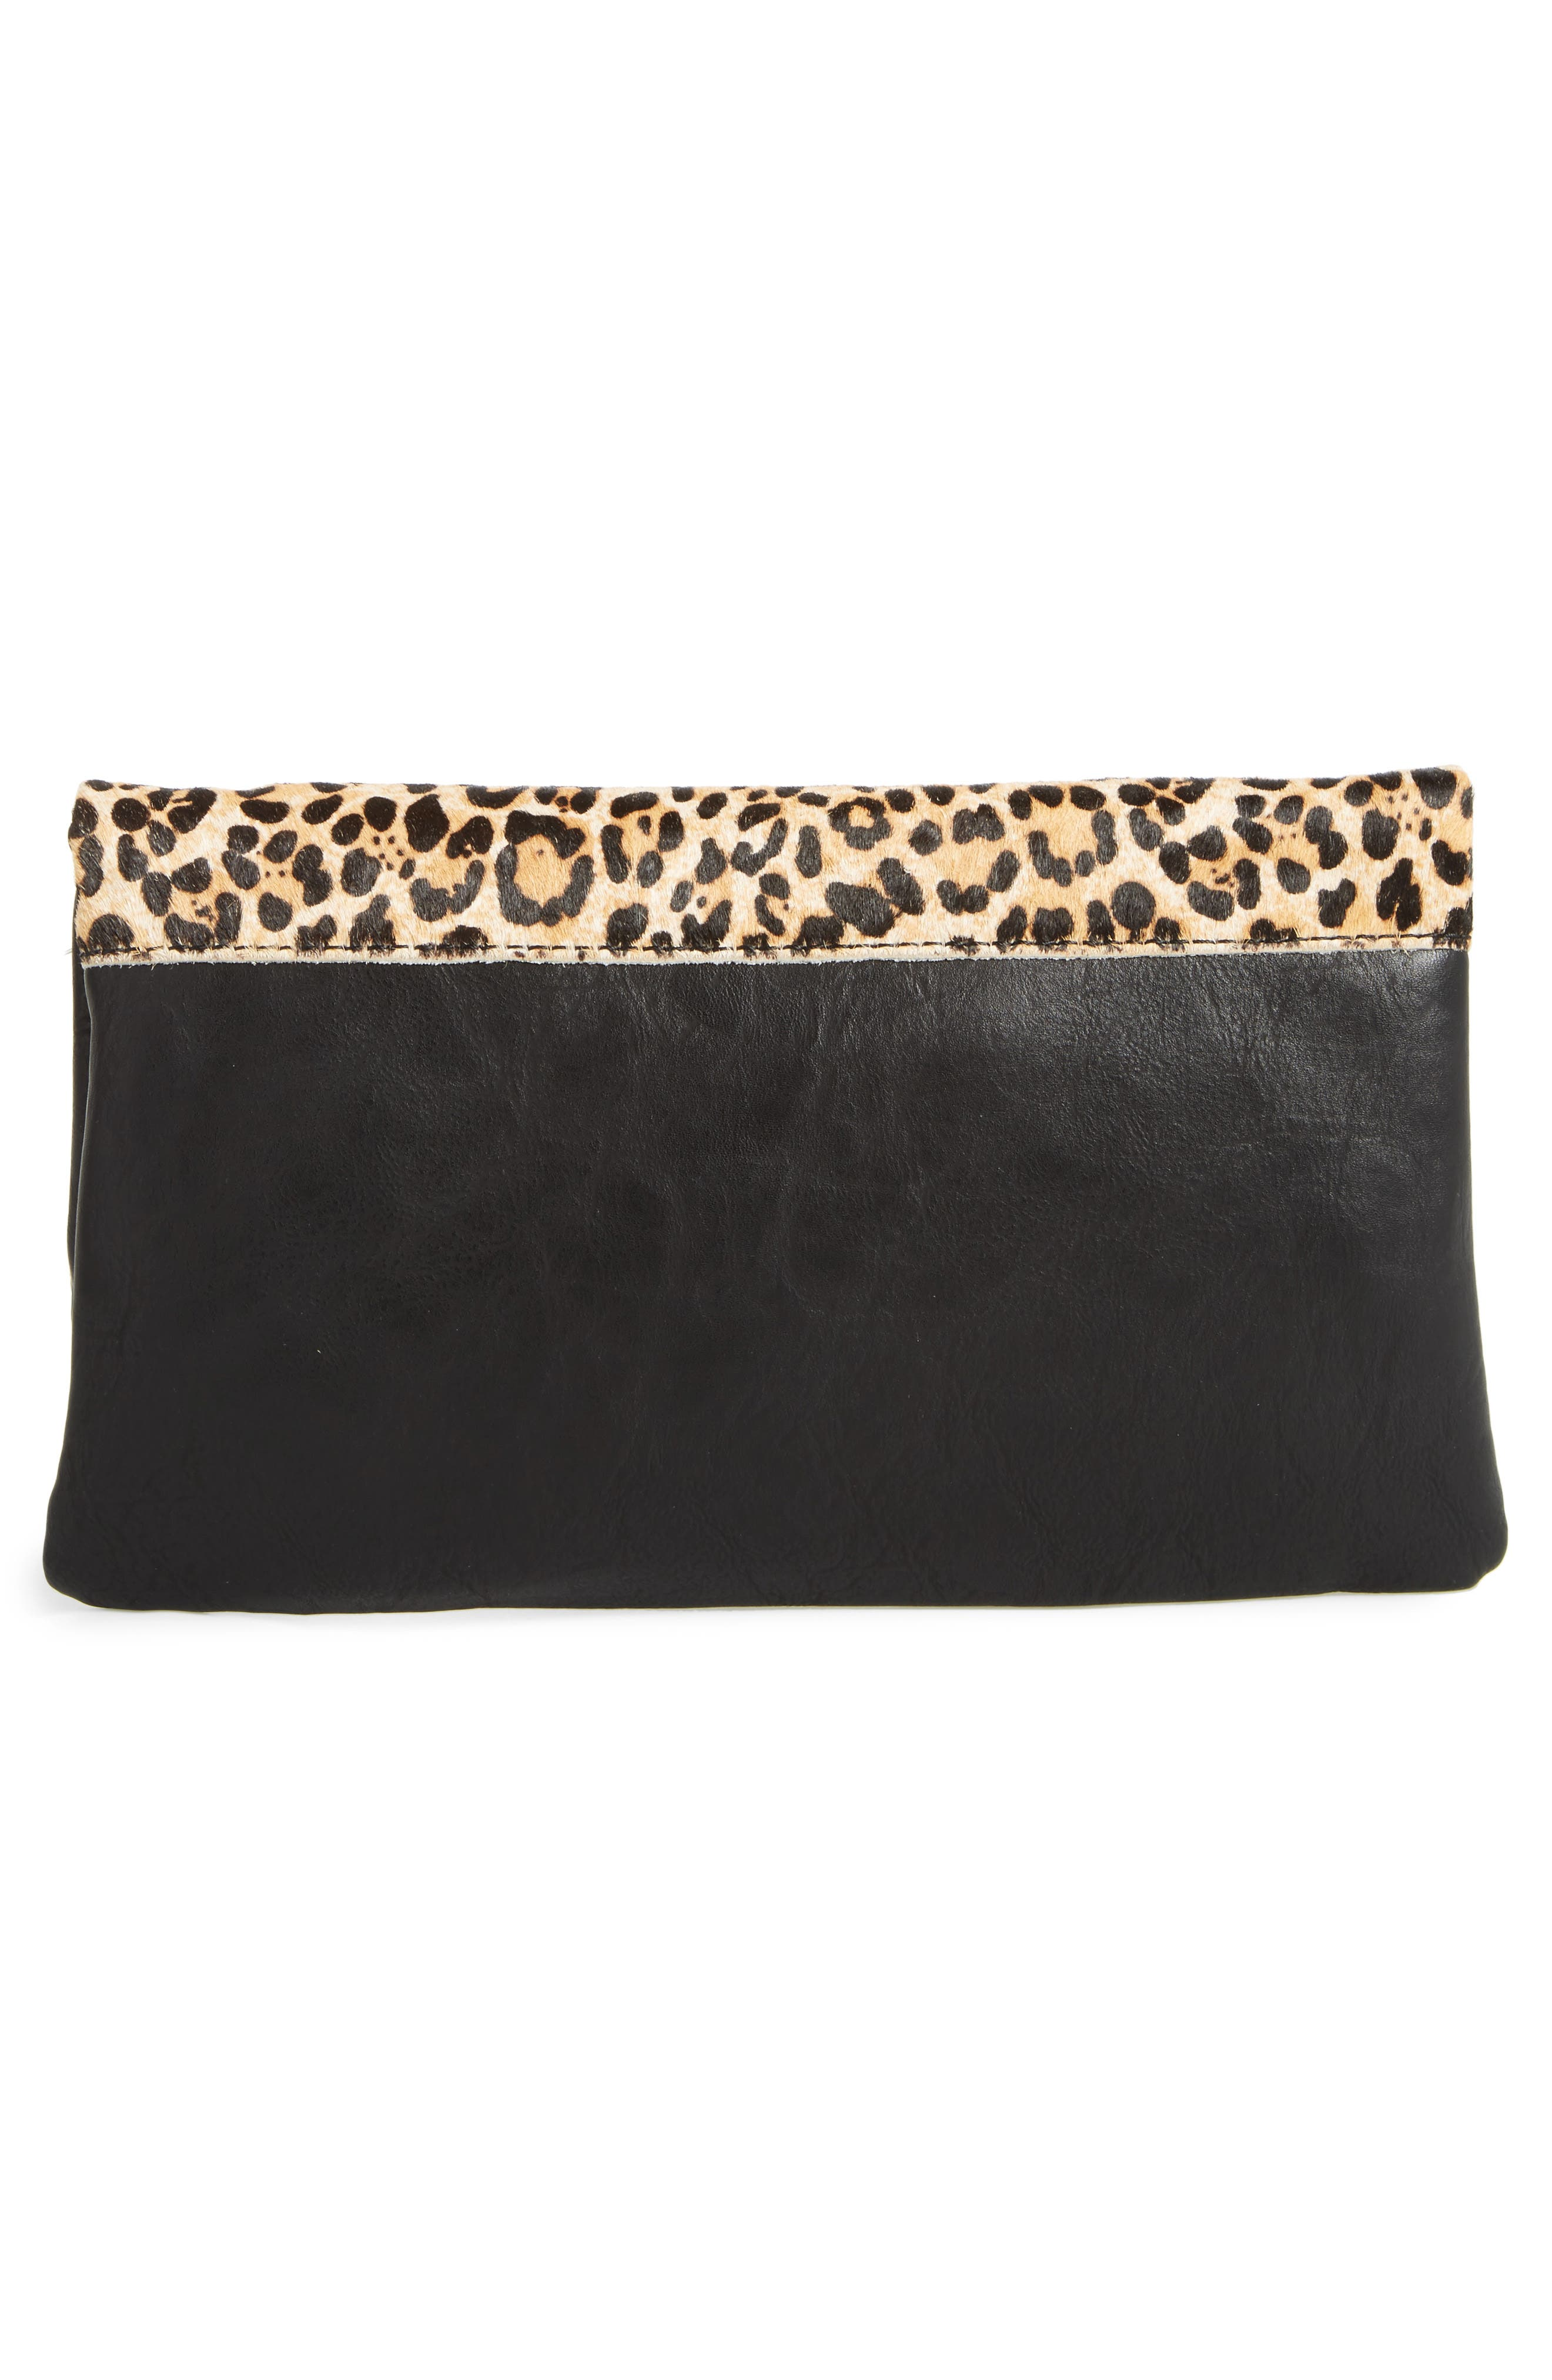 Marlena Faux Leather Foldover Clutch,                             Alternate thumbnail 3, color,                             200